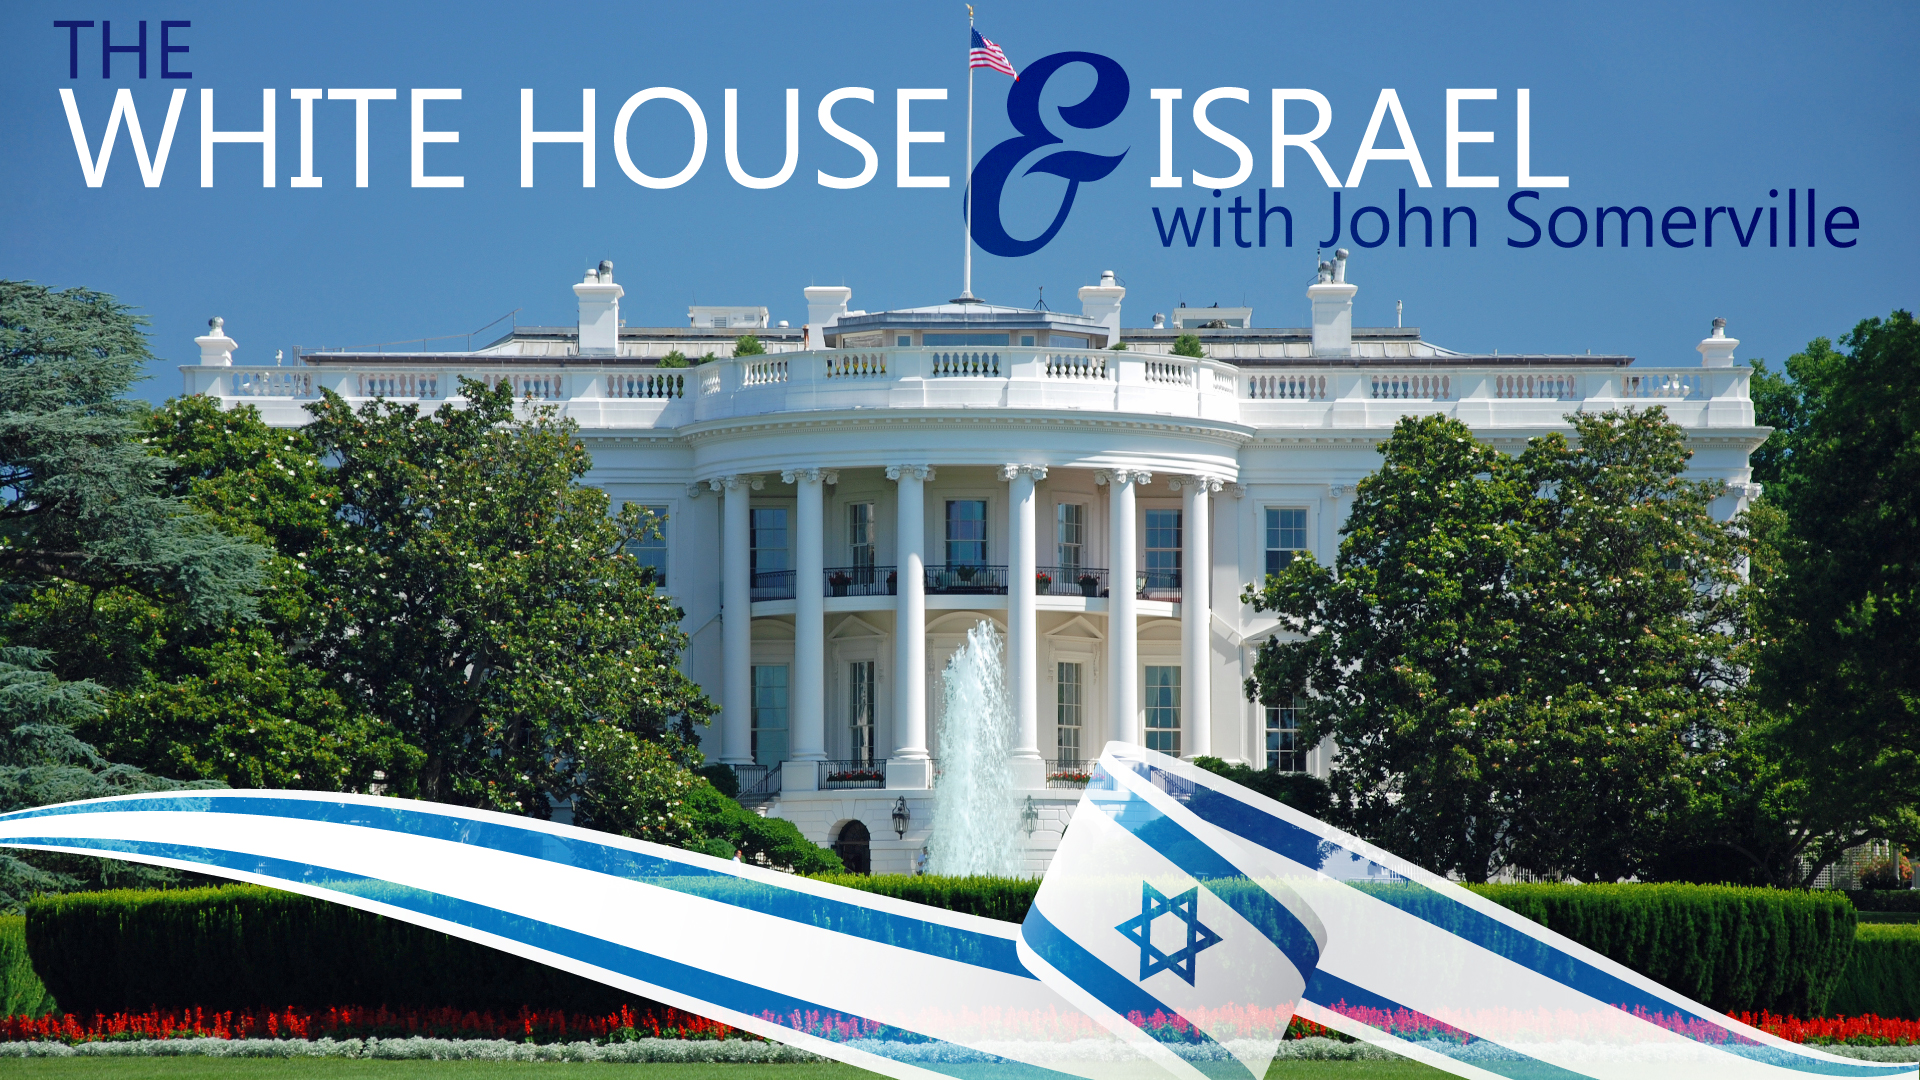 The White House & Israel